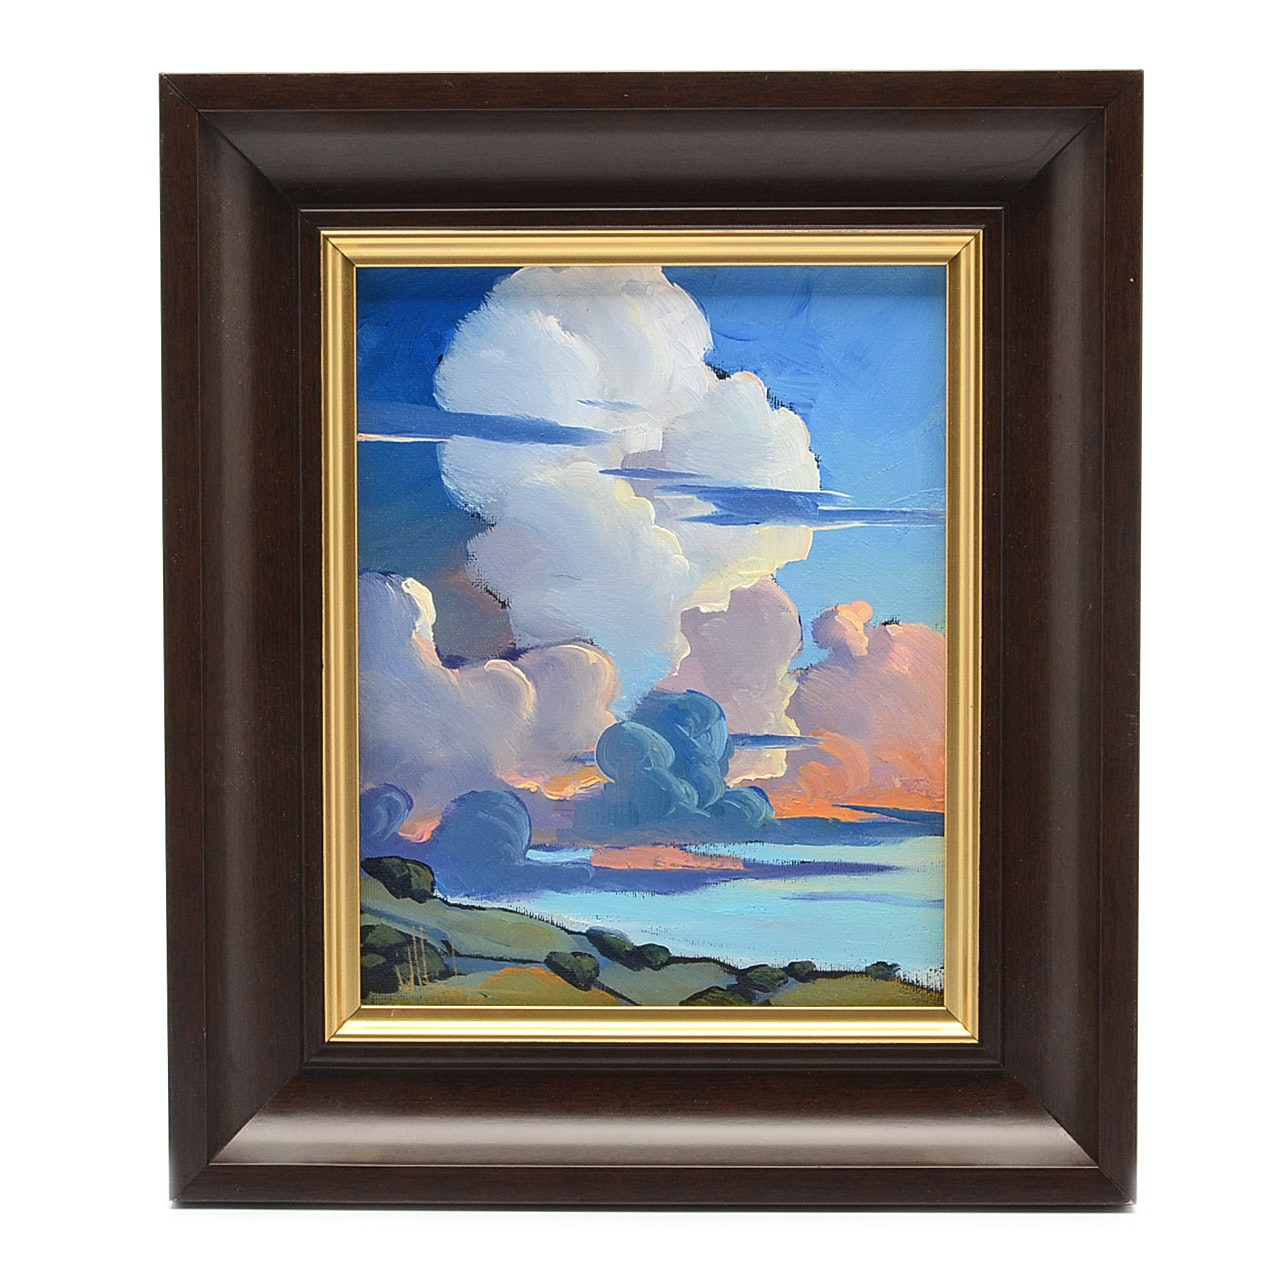 William Hawkins Oil Painting on Canvas Board of Dramatic Sky